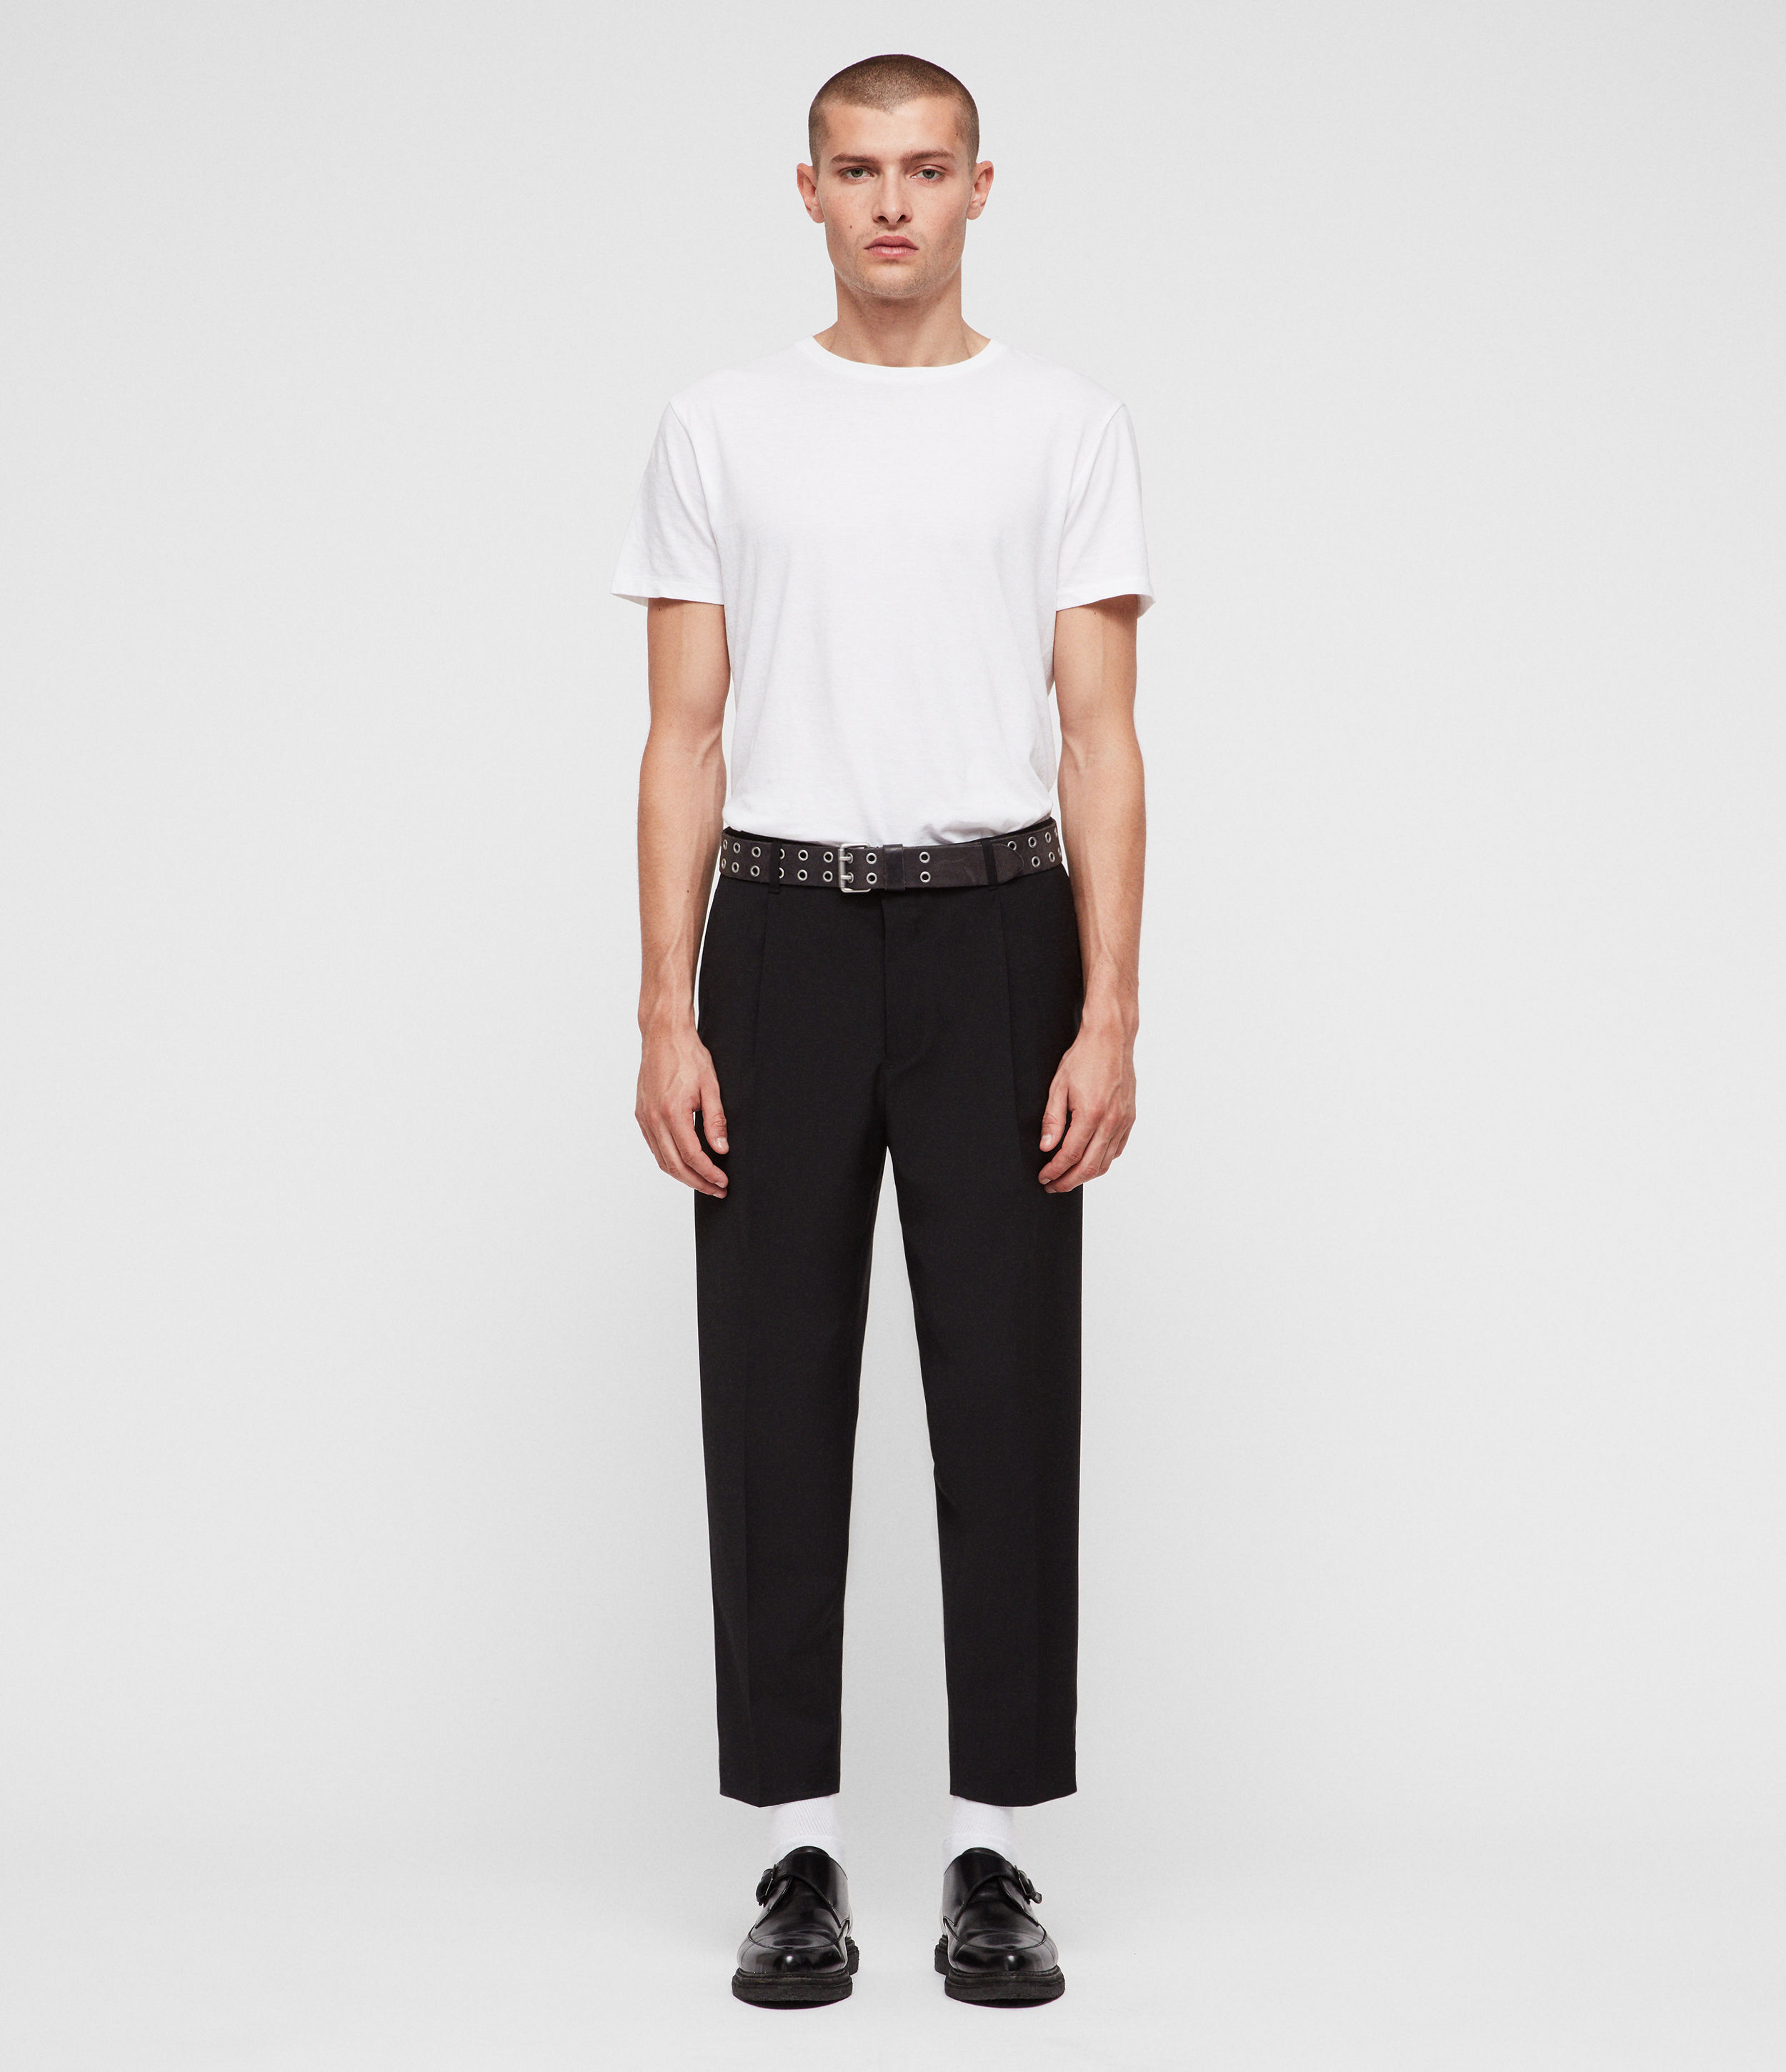 AllSaints Siris Trousers